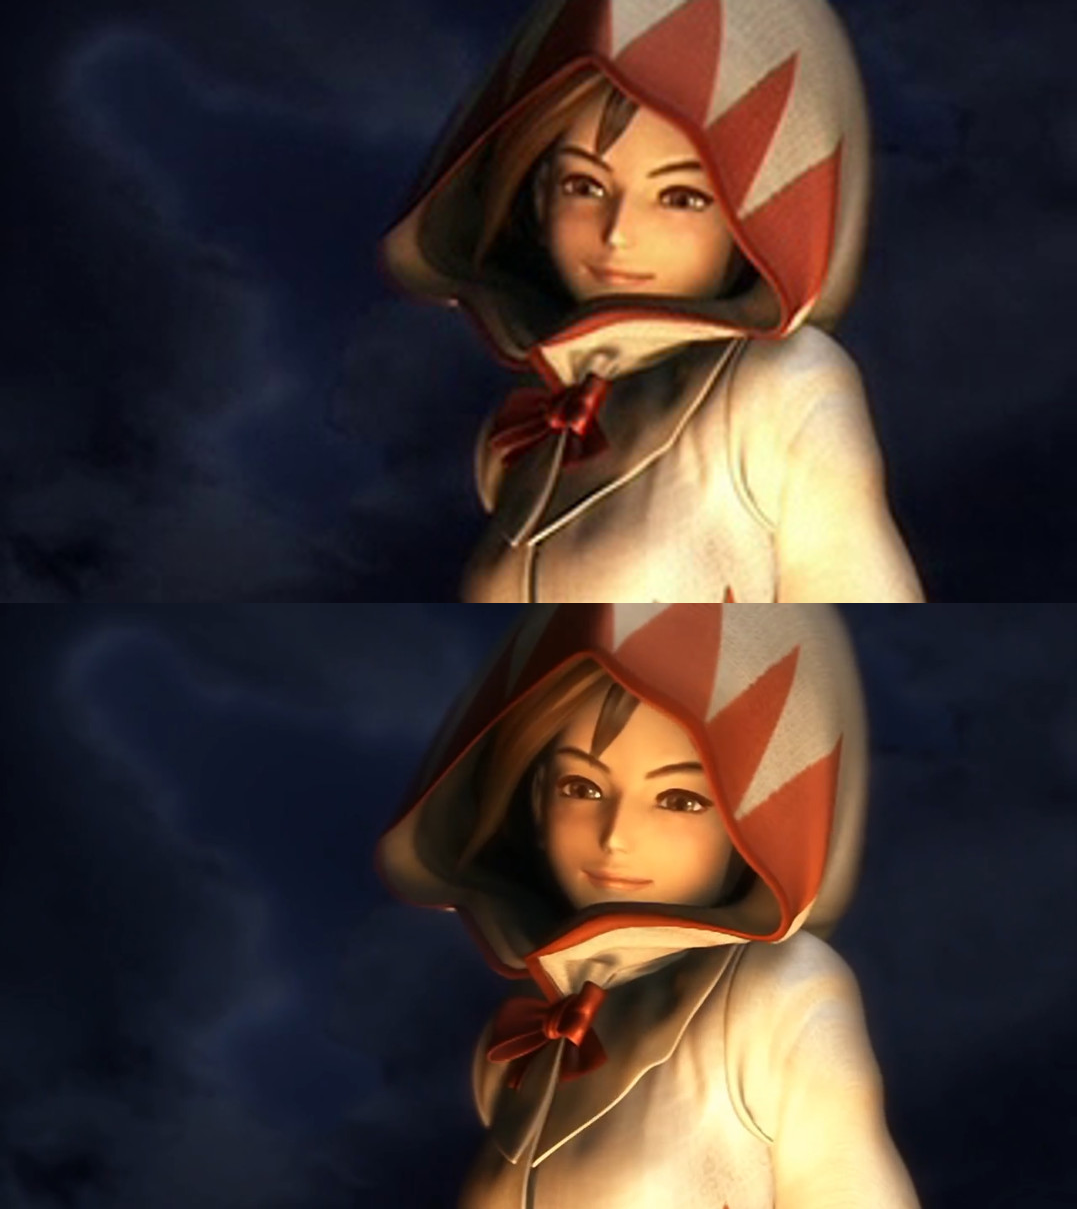 Final Fantasy IX version differences